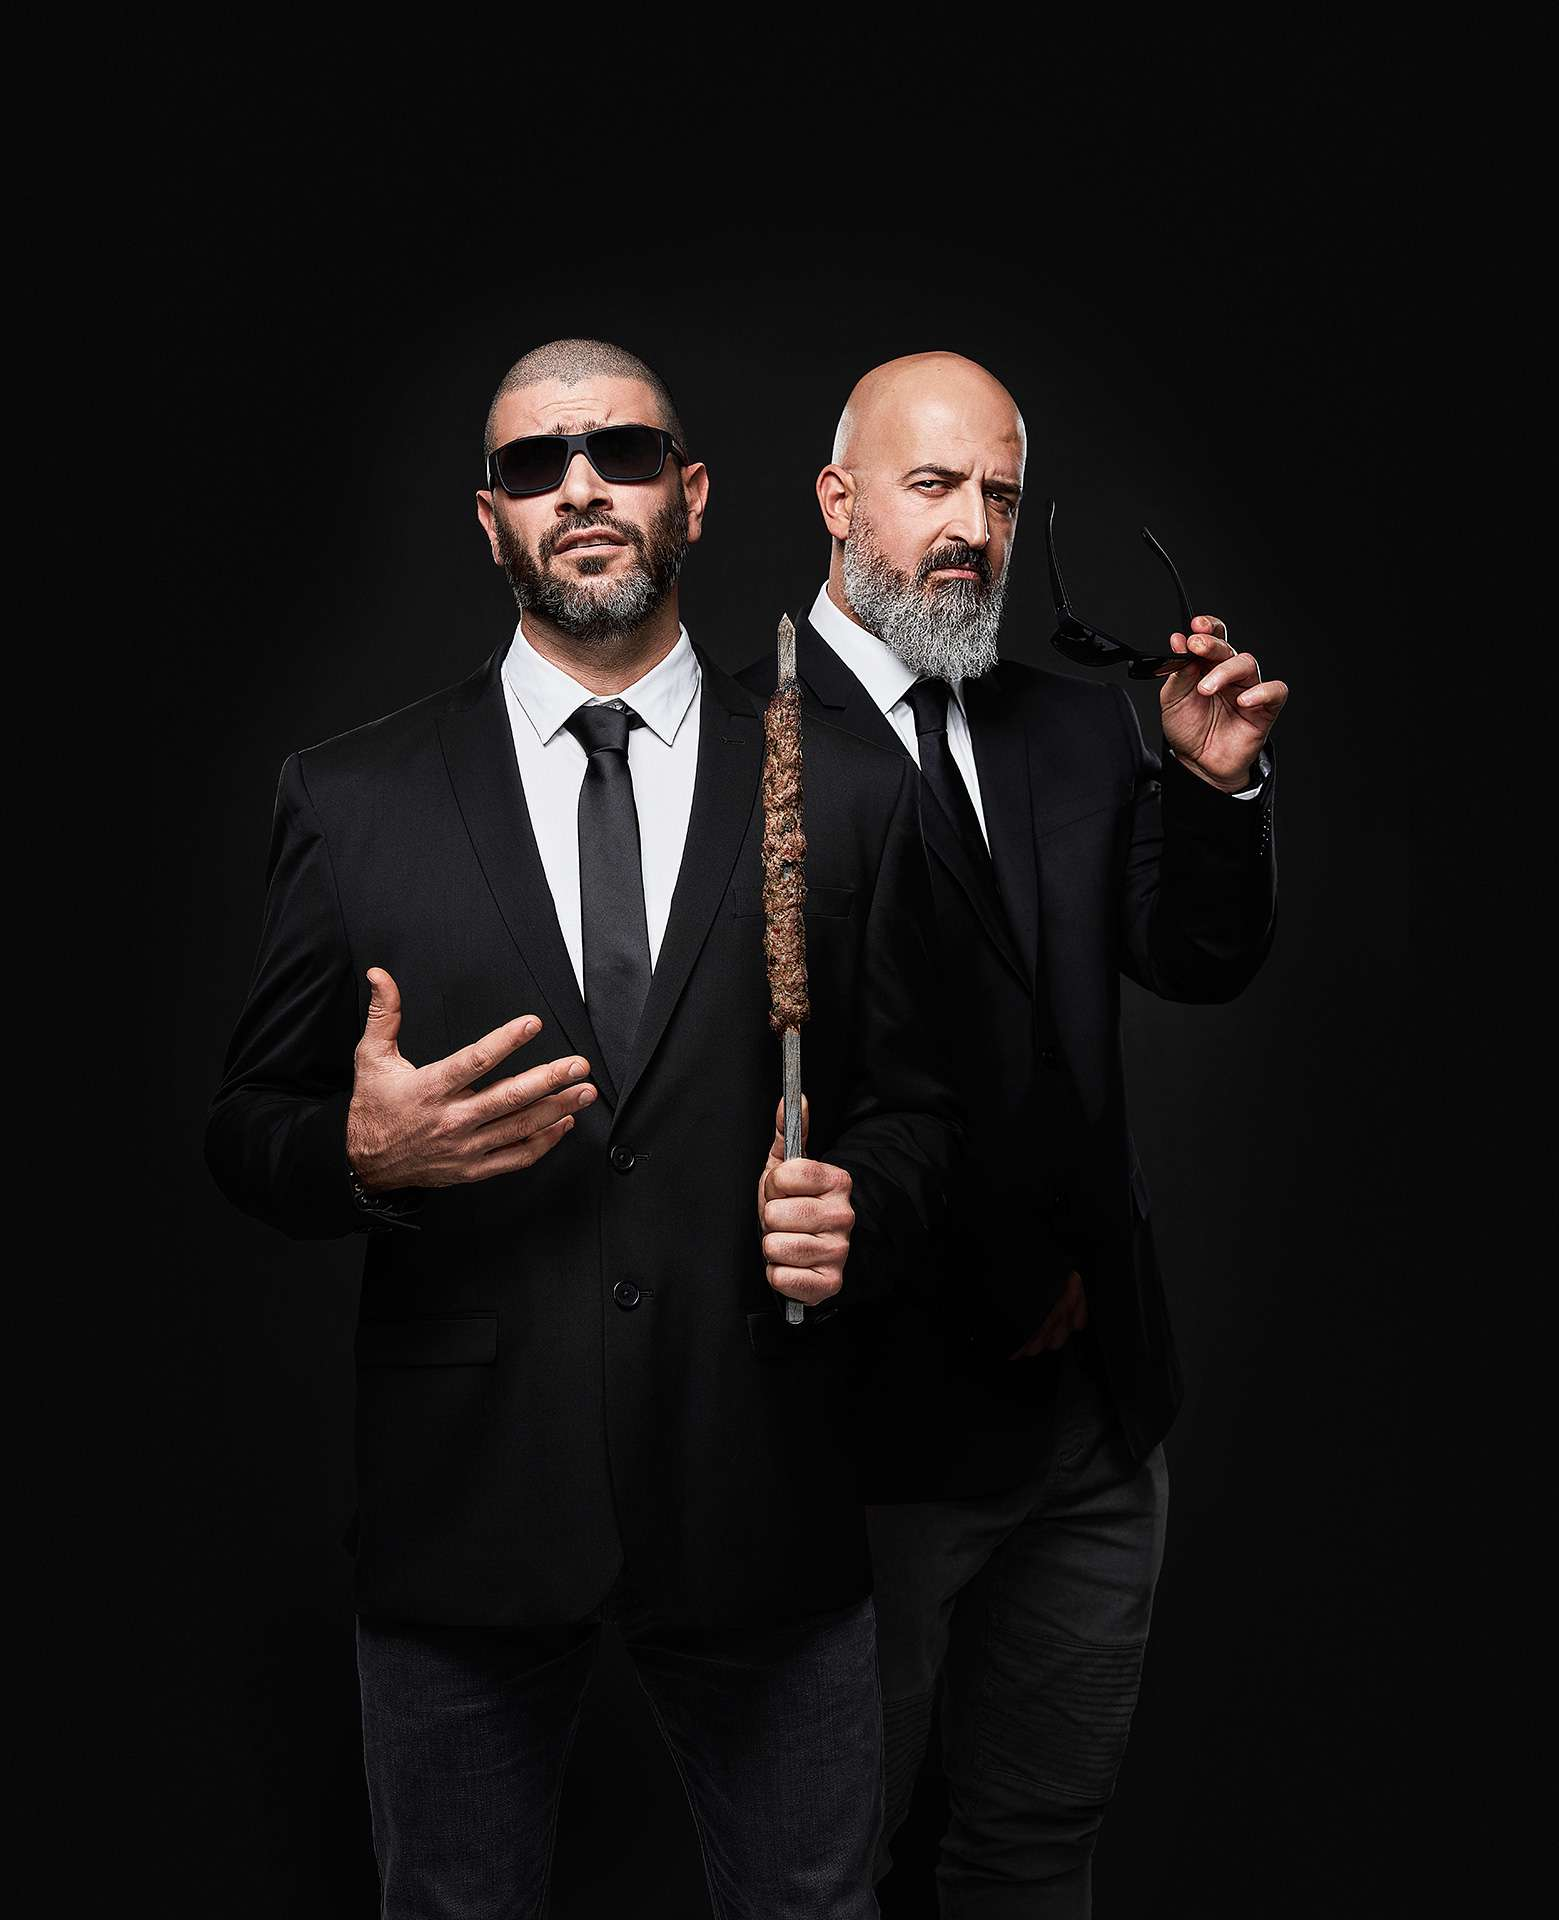 portrait of chefs Charbel Yazbeck and Akram Sleiman posing in a Men in Black Fashin wearing sunglasses looking badass by Jocelyn Michel for the Cathcart